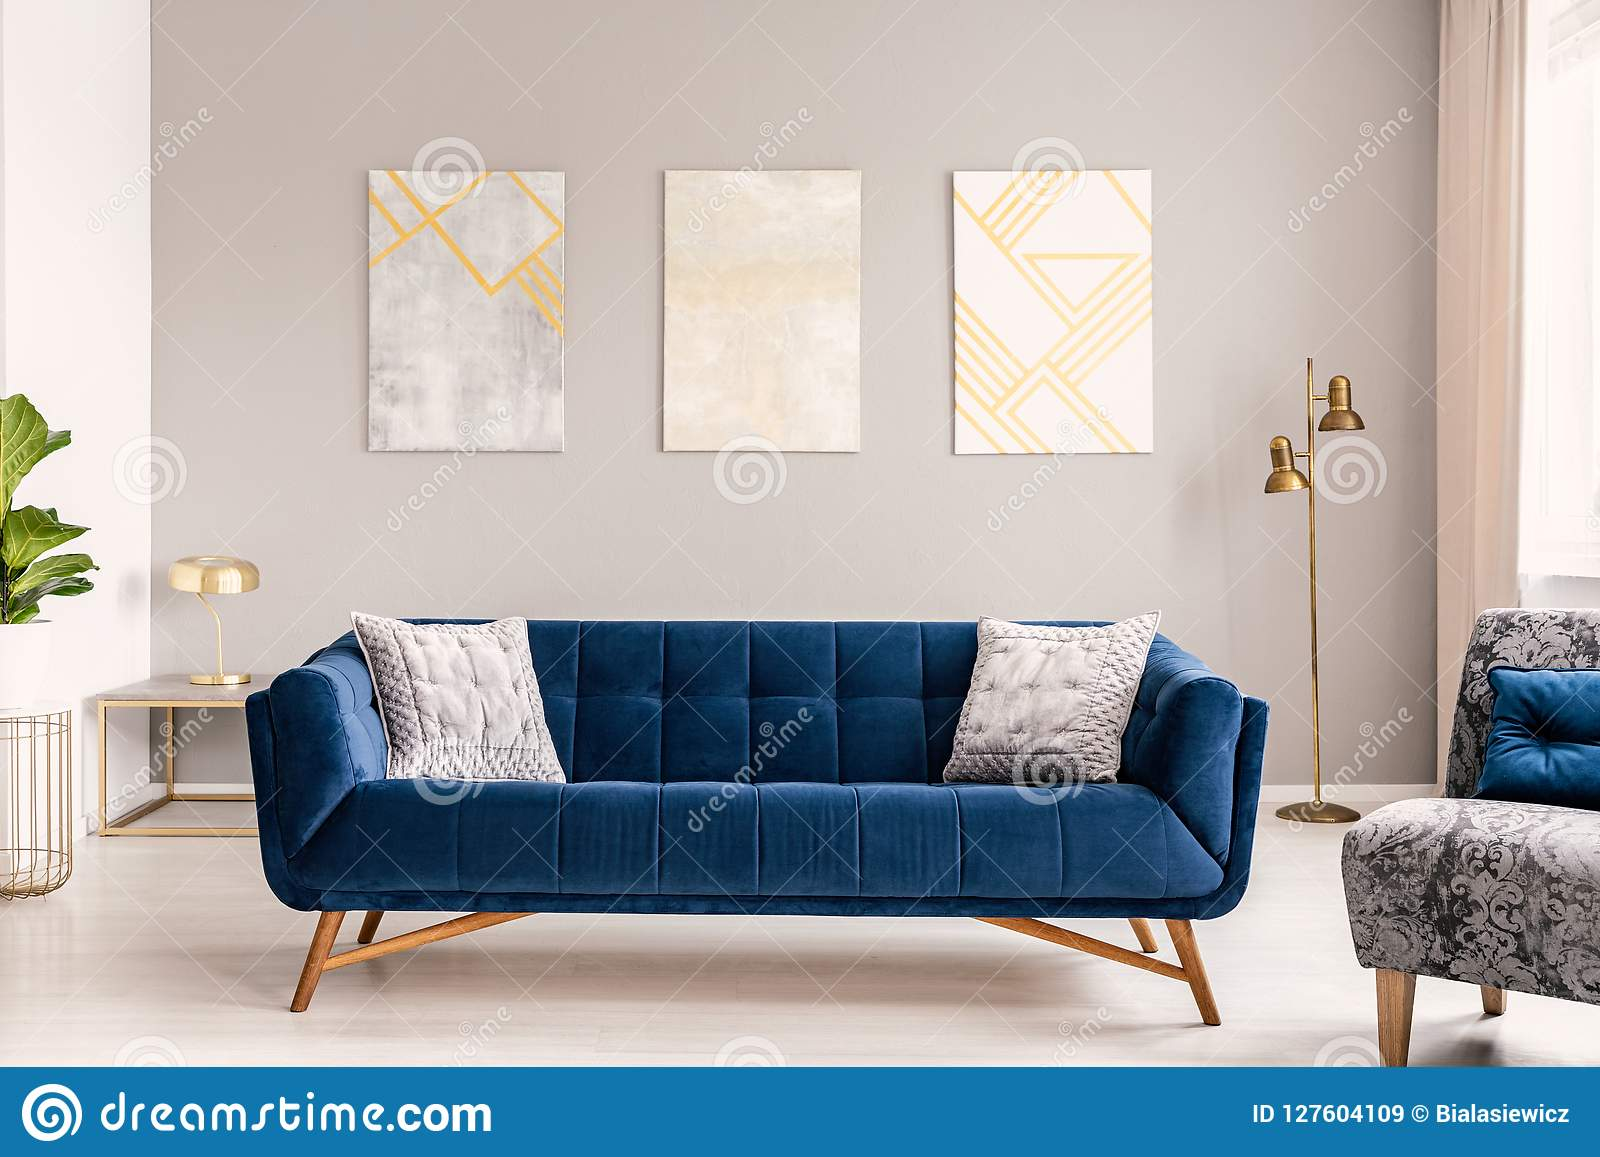 Elegant Living Room Interior With A Comfortable Big Blue ...